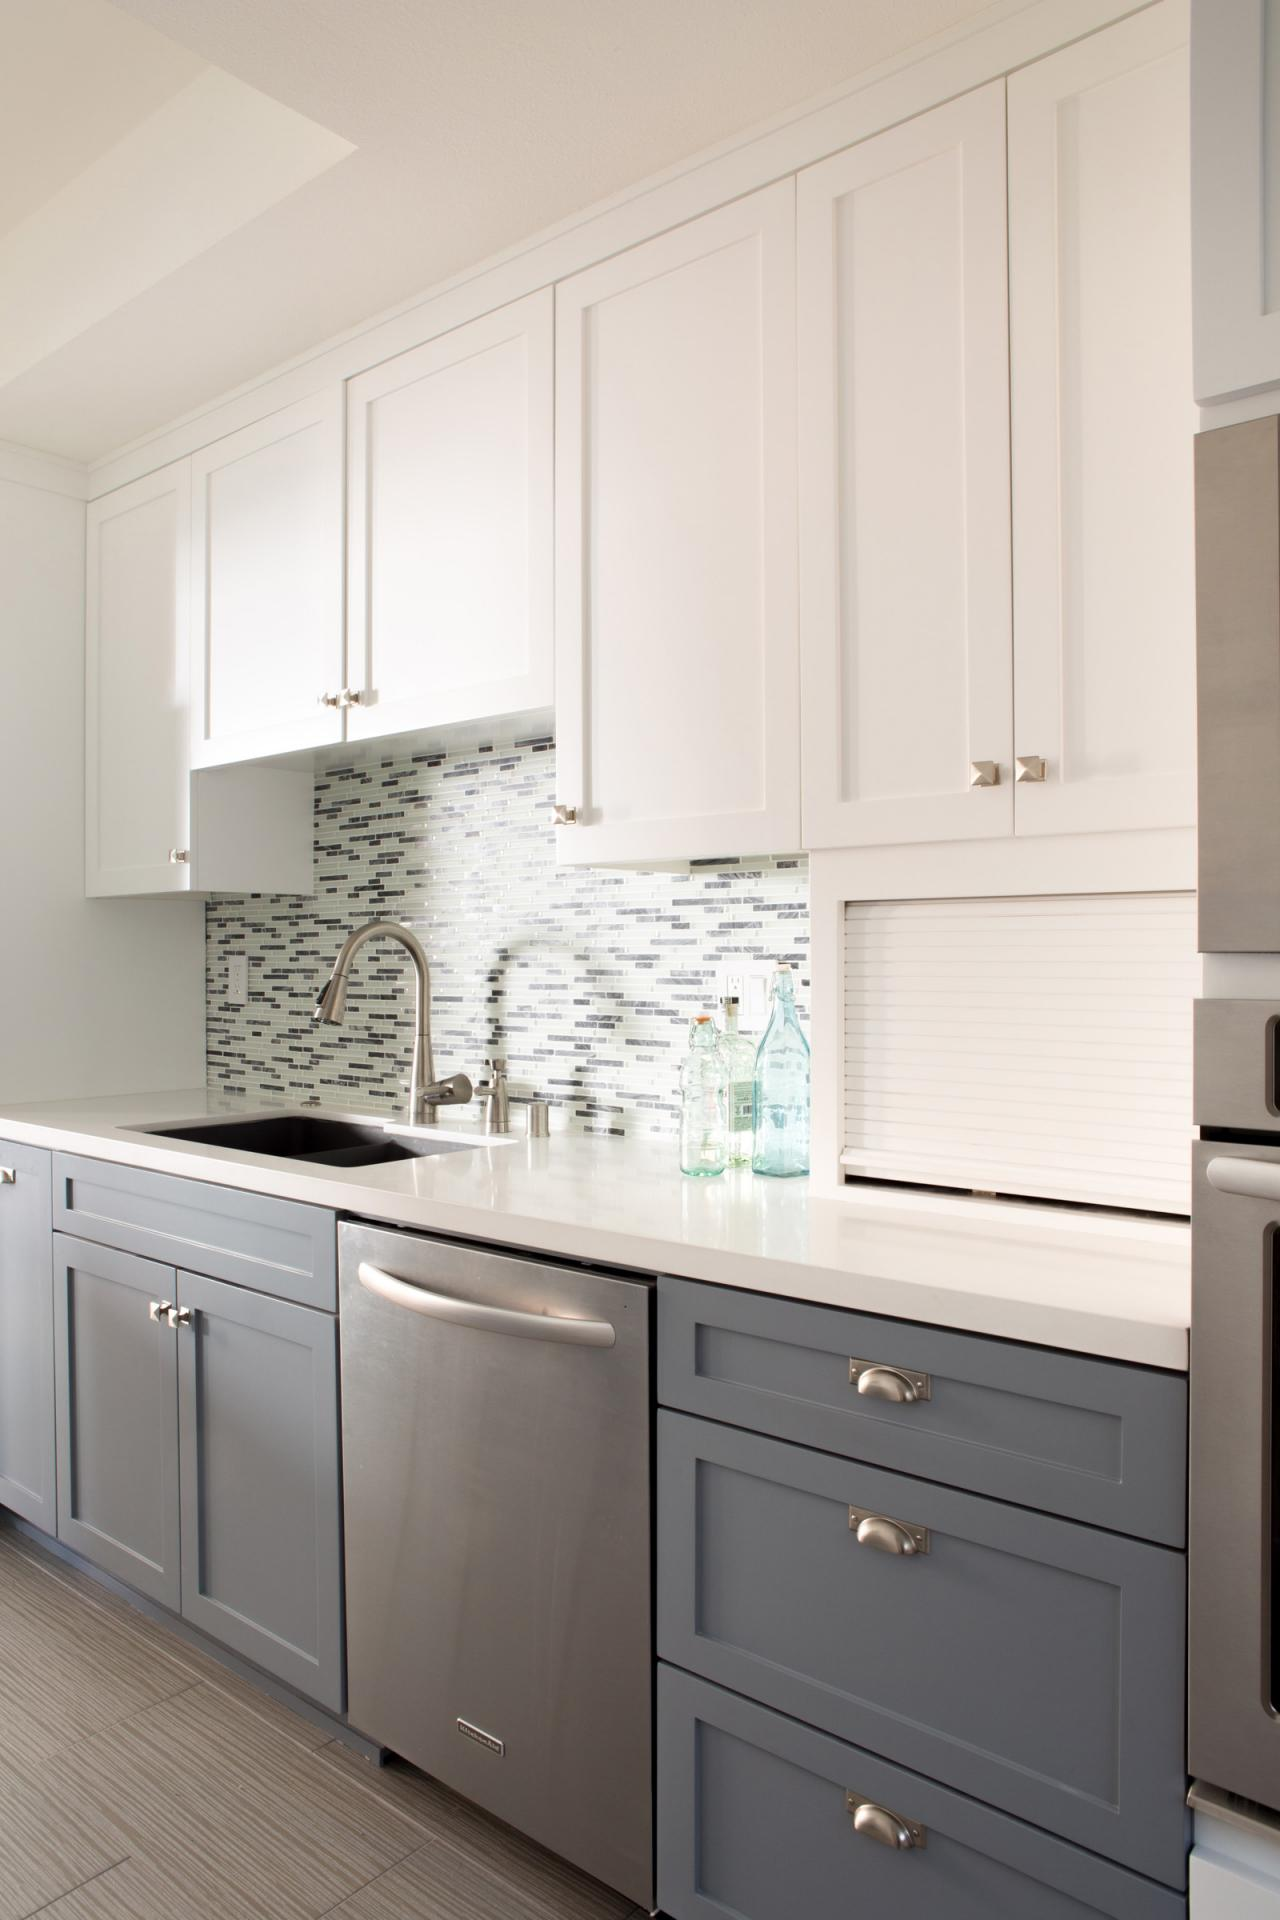 sleek two toned kitchen cabinets light plays off the glass tile